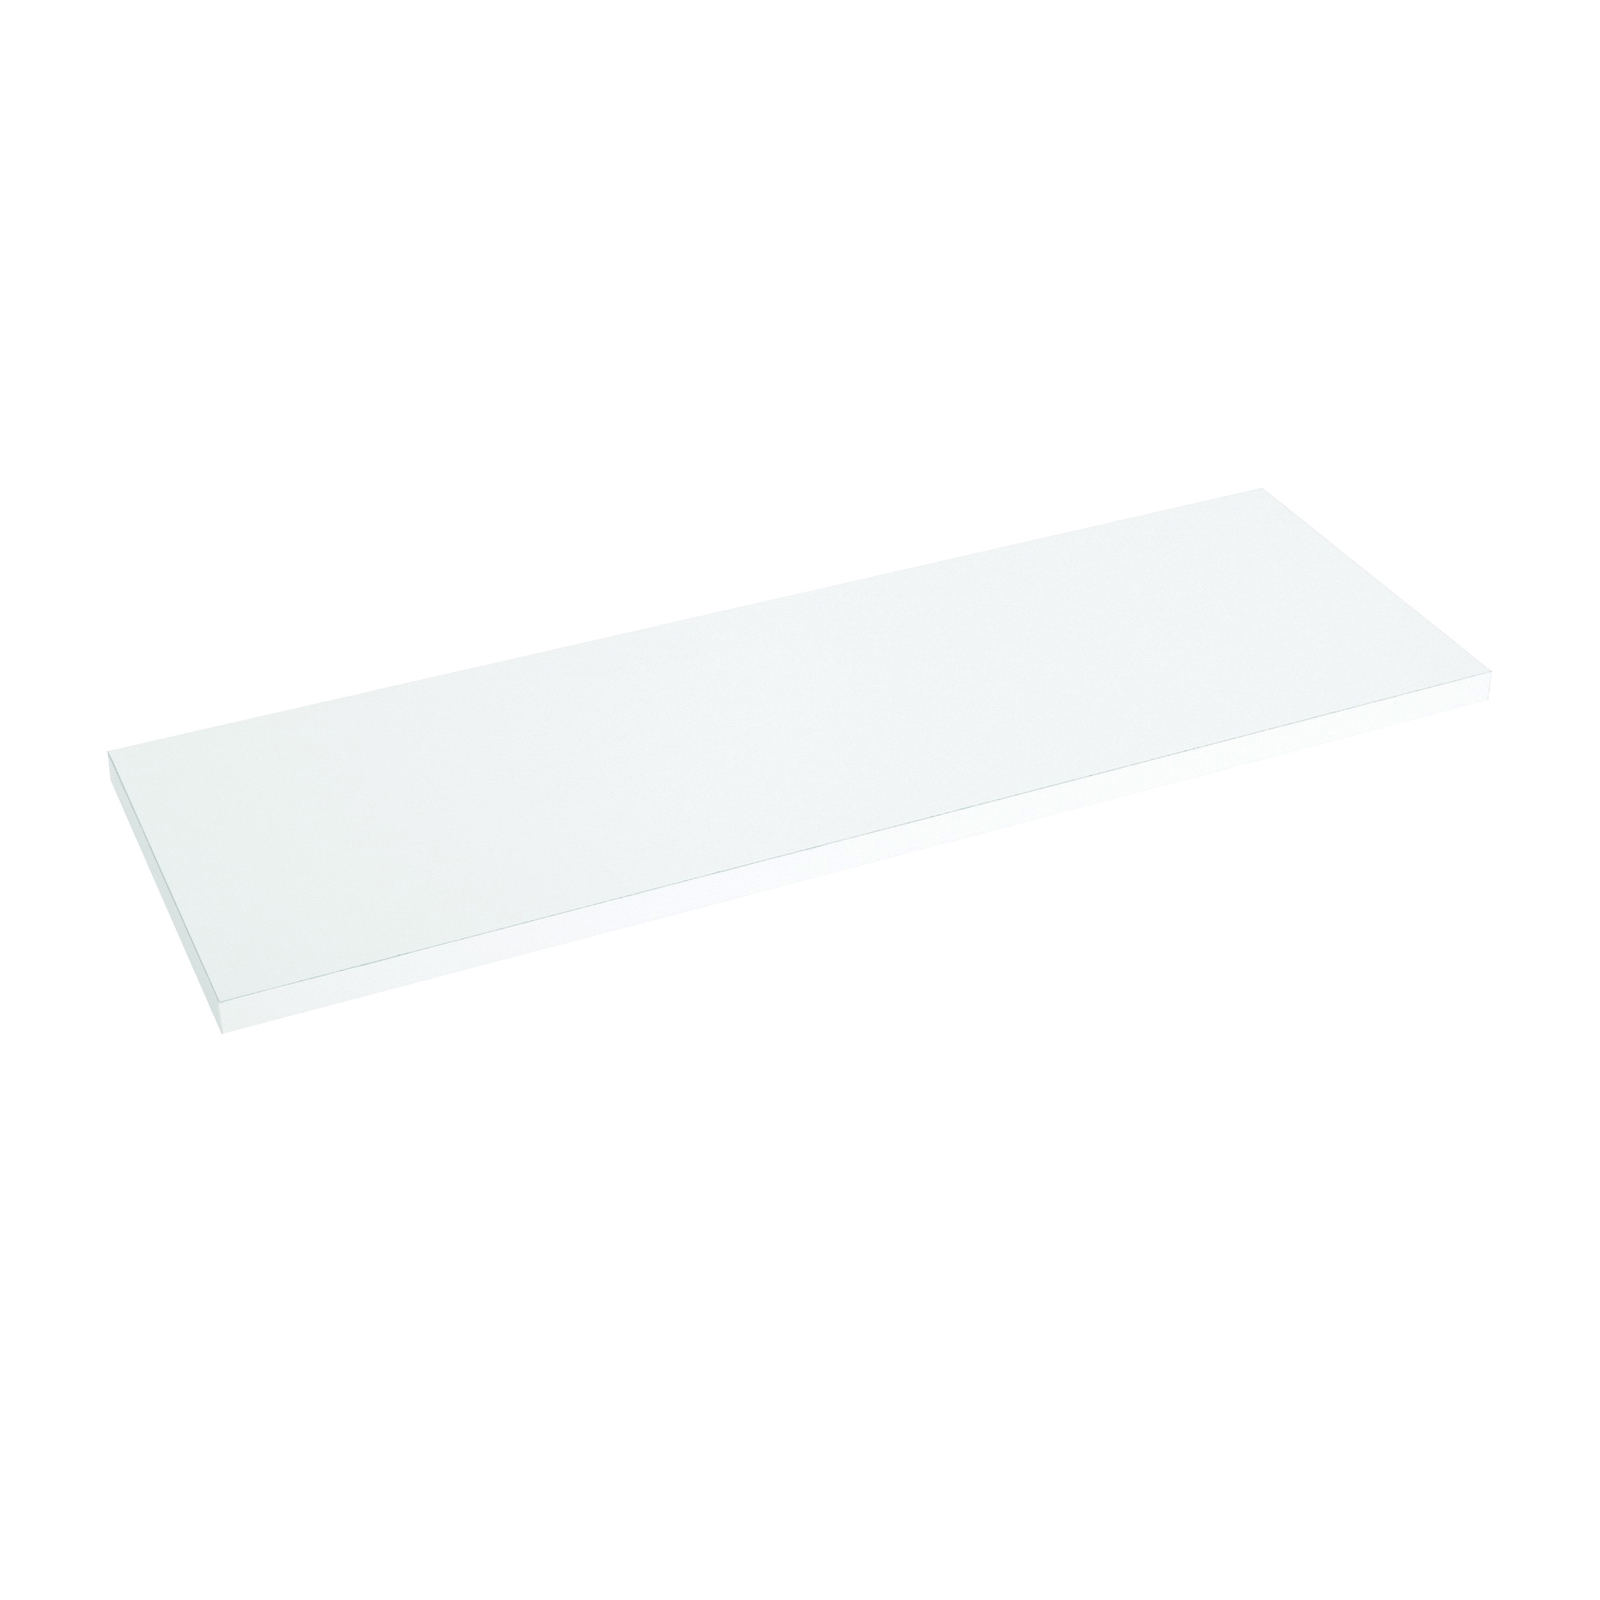 Picture of Knape & Vogt 1980 WH 10X24 Shelf Board, 200 lb, 5-Shelf, 24 in L, 10 in W, Particleboard